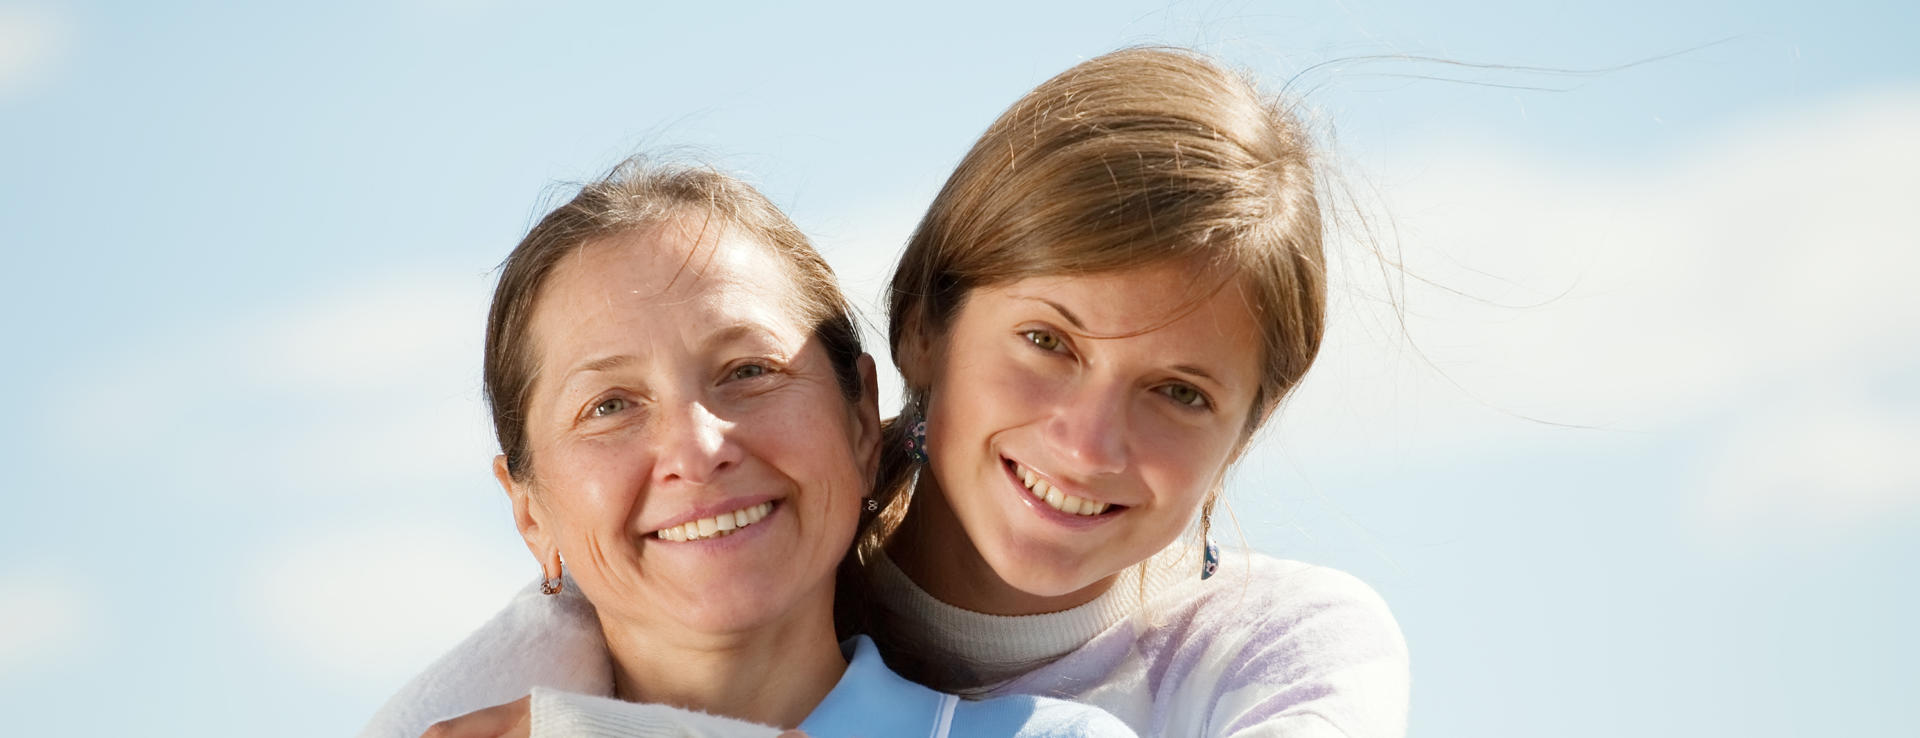 Portrait of mother with teen daughter against sky